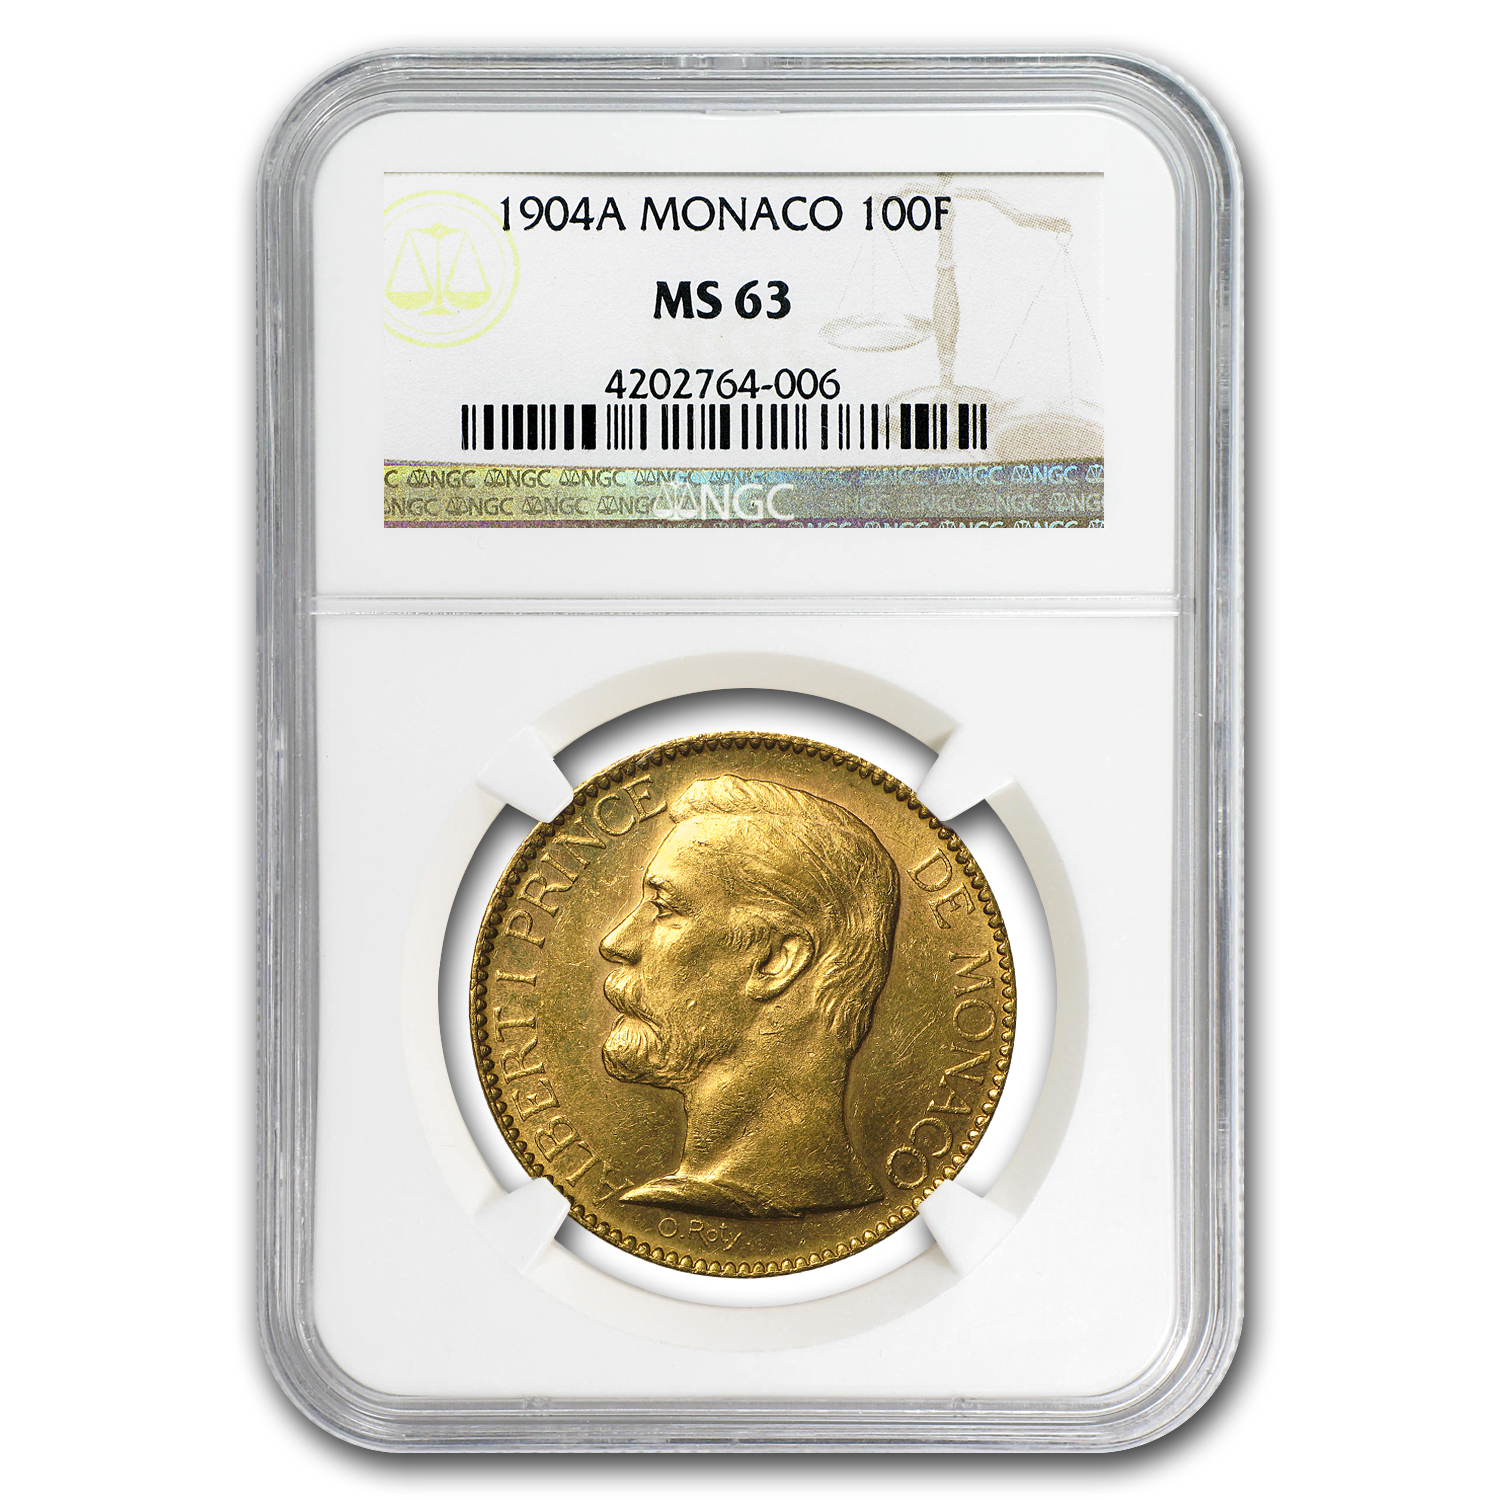 1904-A Monaco Gold 100 Francs Albert I MS-63 NGC